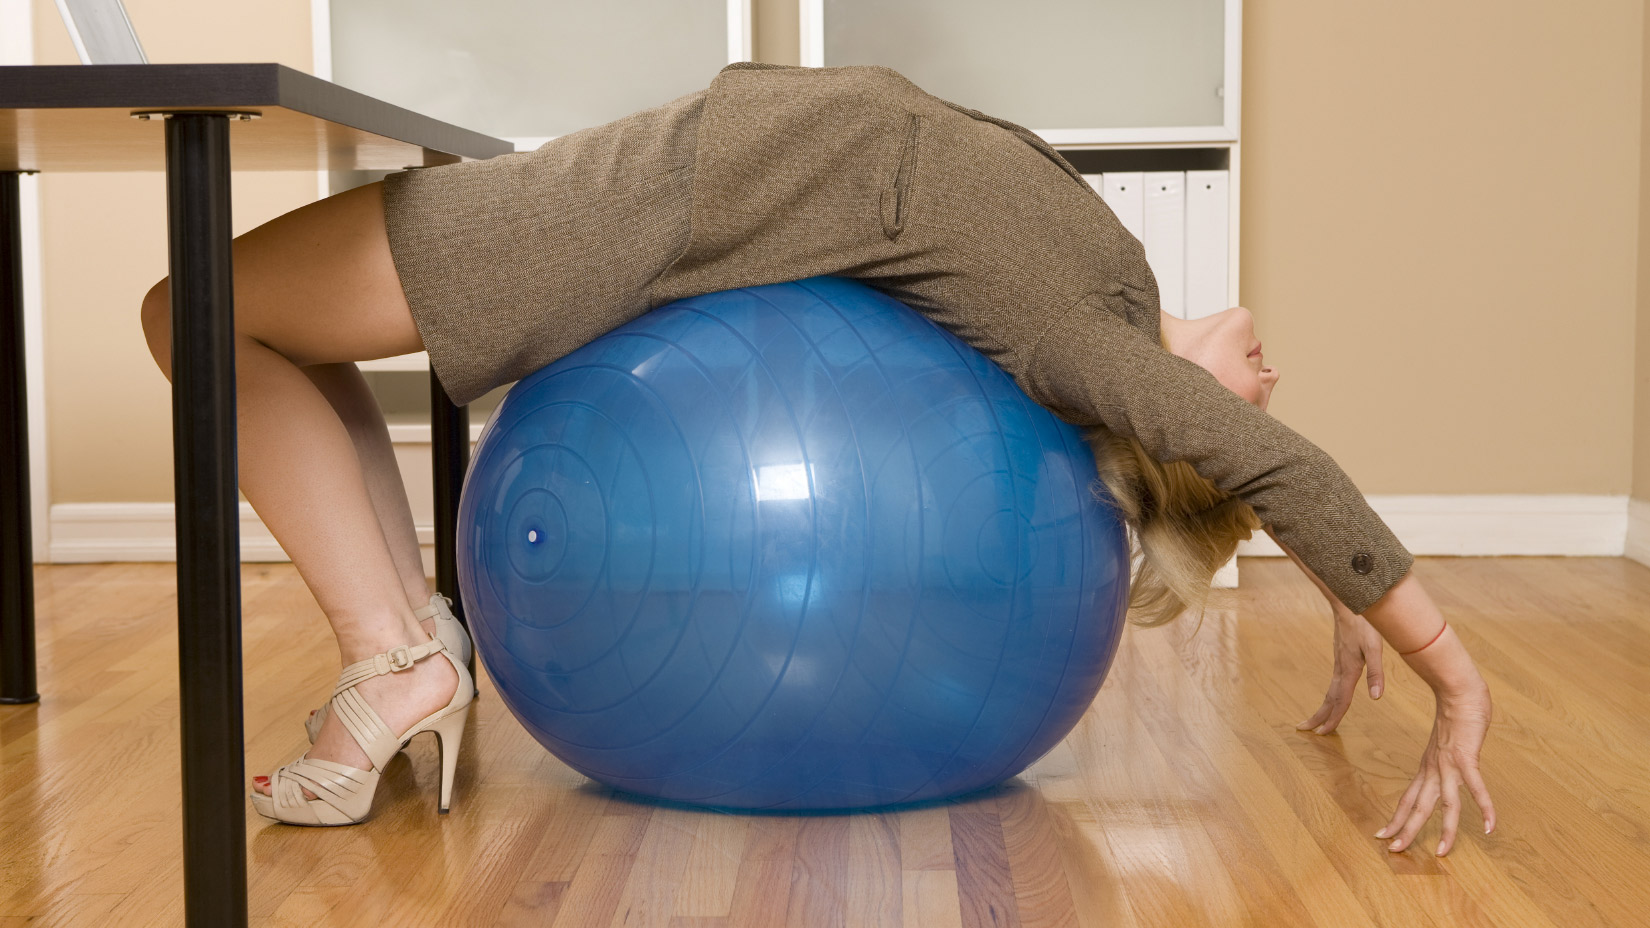 Yoga Ball Desk Chair Should You Use Exercise Ball Instead Of Office Chair